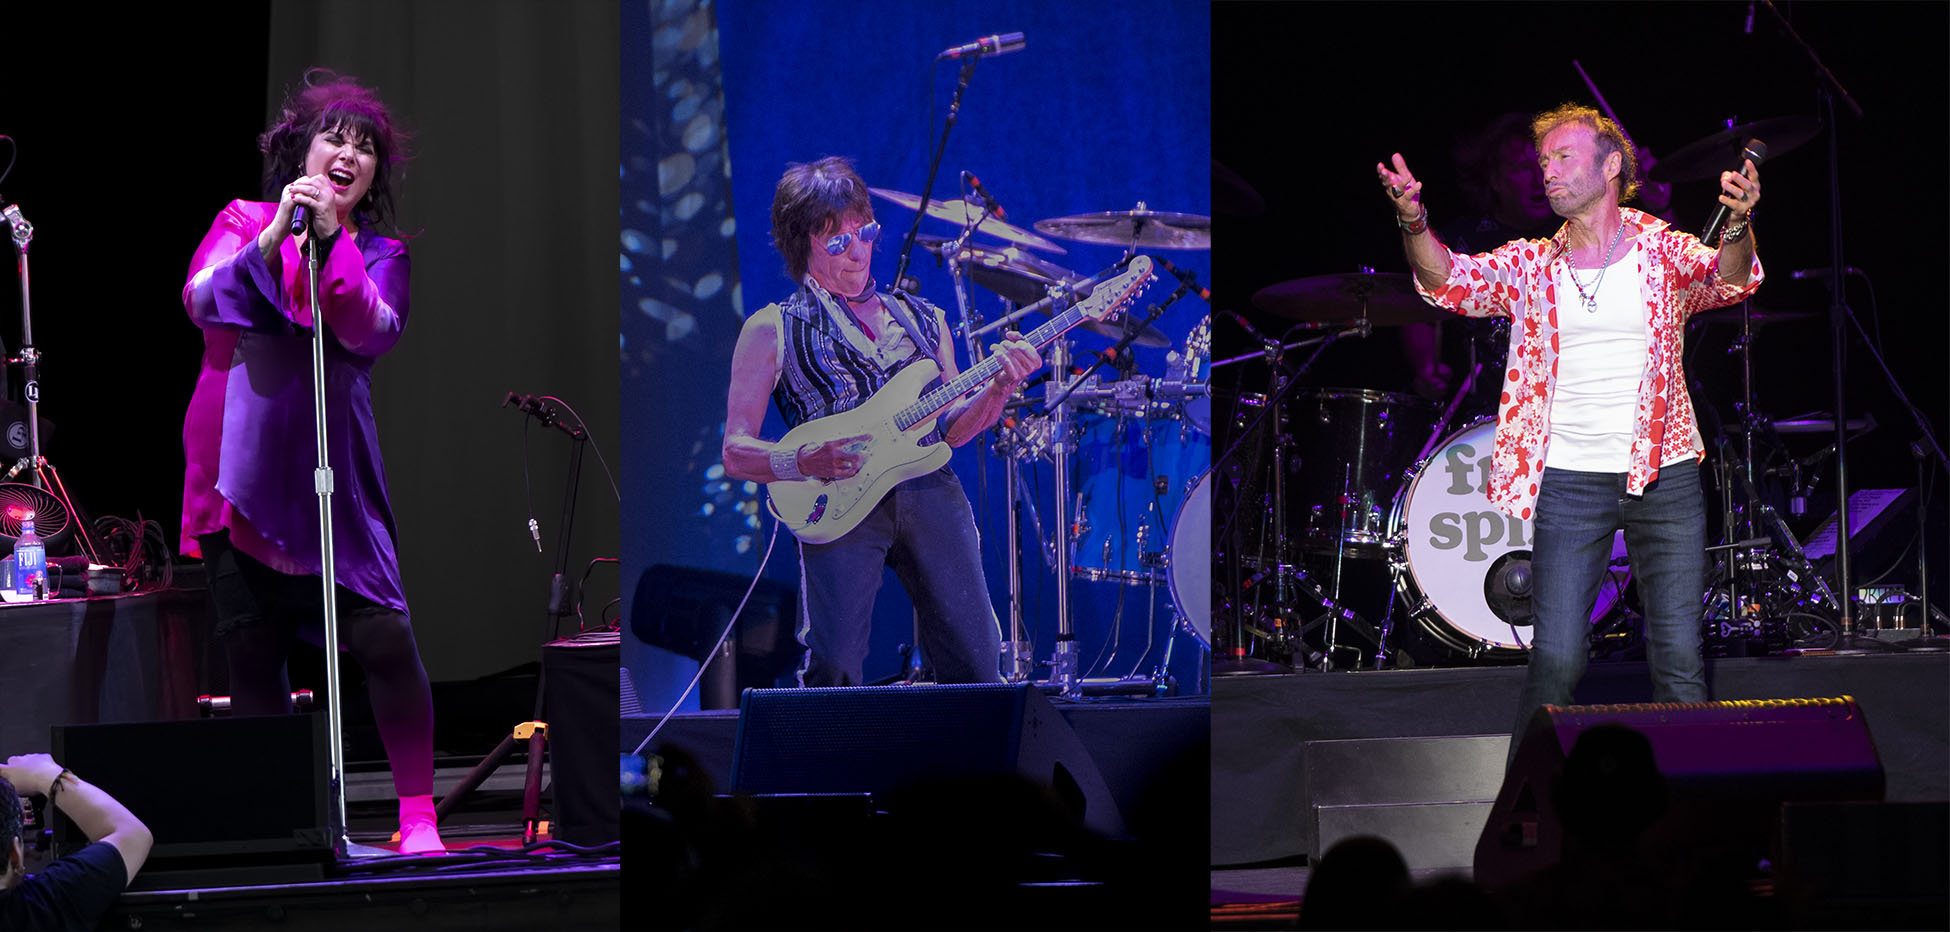 Ann Wilson, Jeff Beck and Paul Rodgers at the Blue Hills Bank Pavillion, Boston, MA August 3, 2018